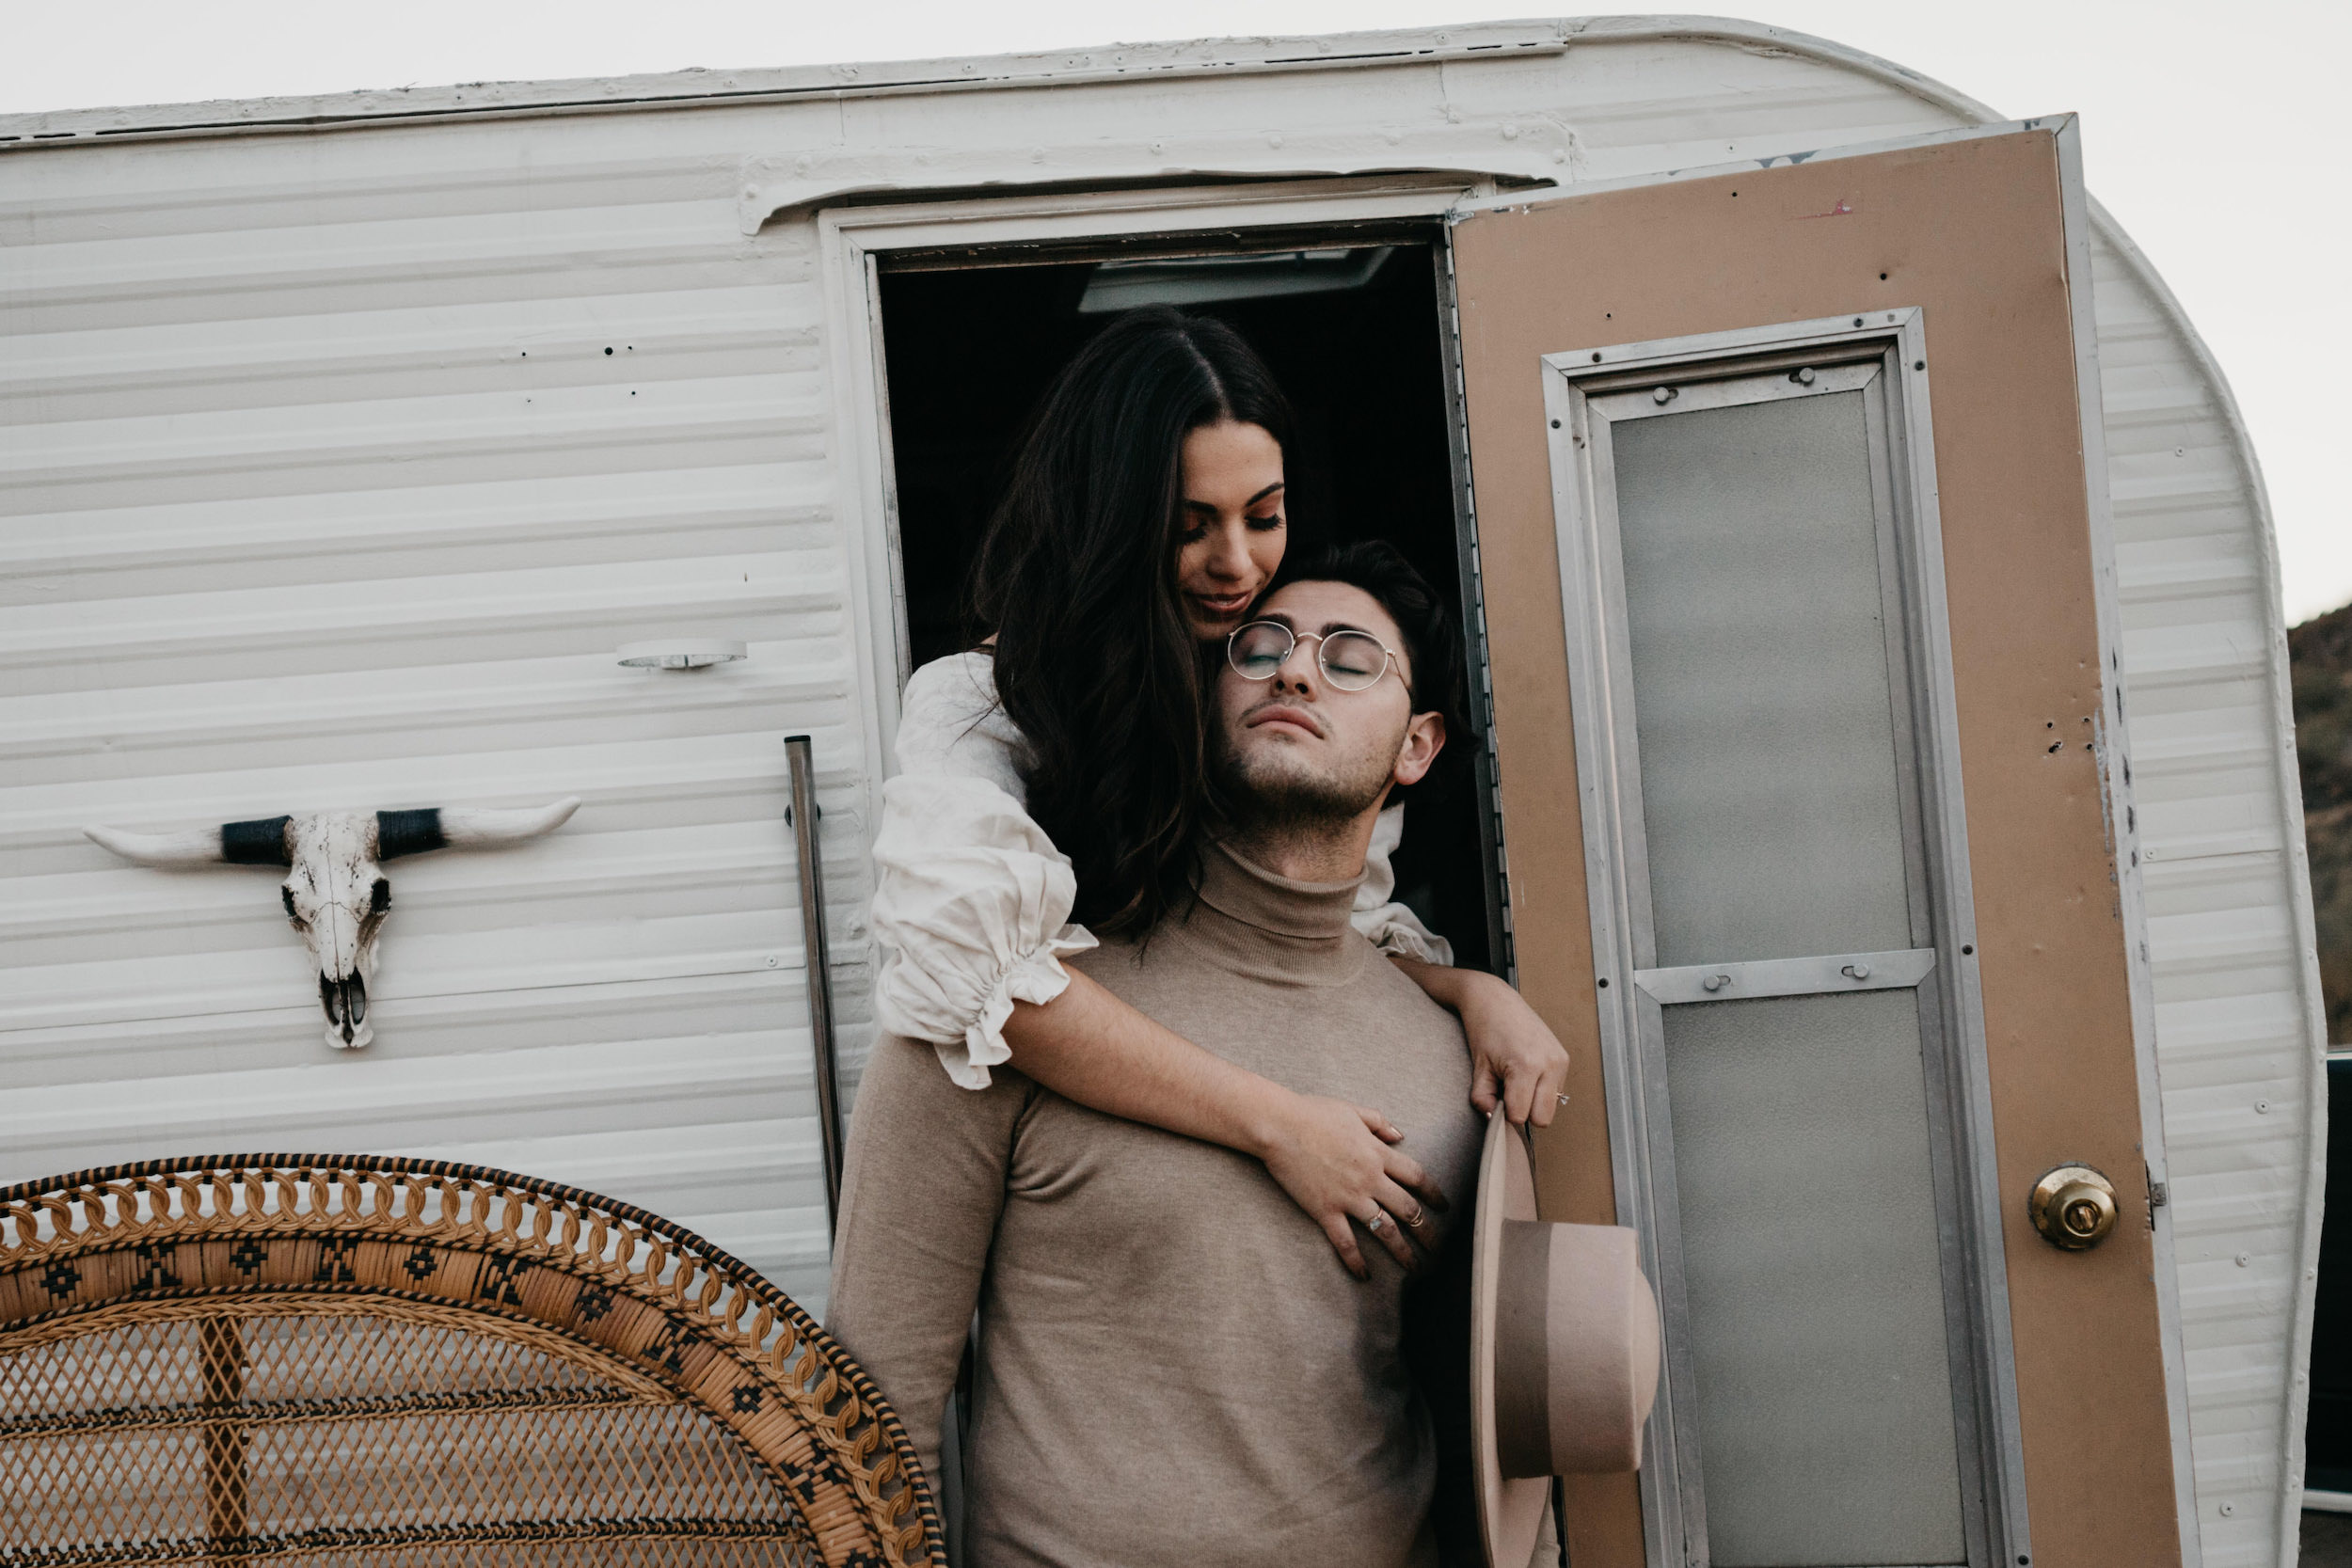 Couple posing in front of their airstream, image by Fatima Elreda Photo